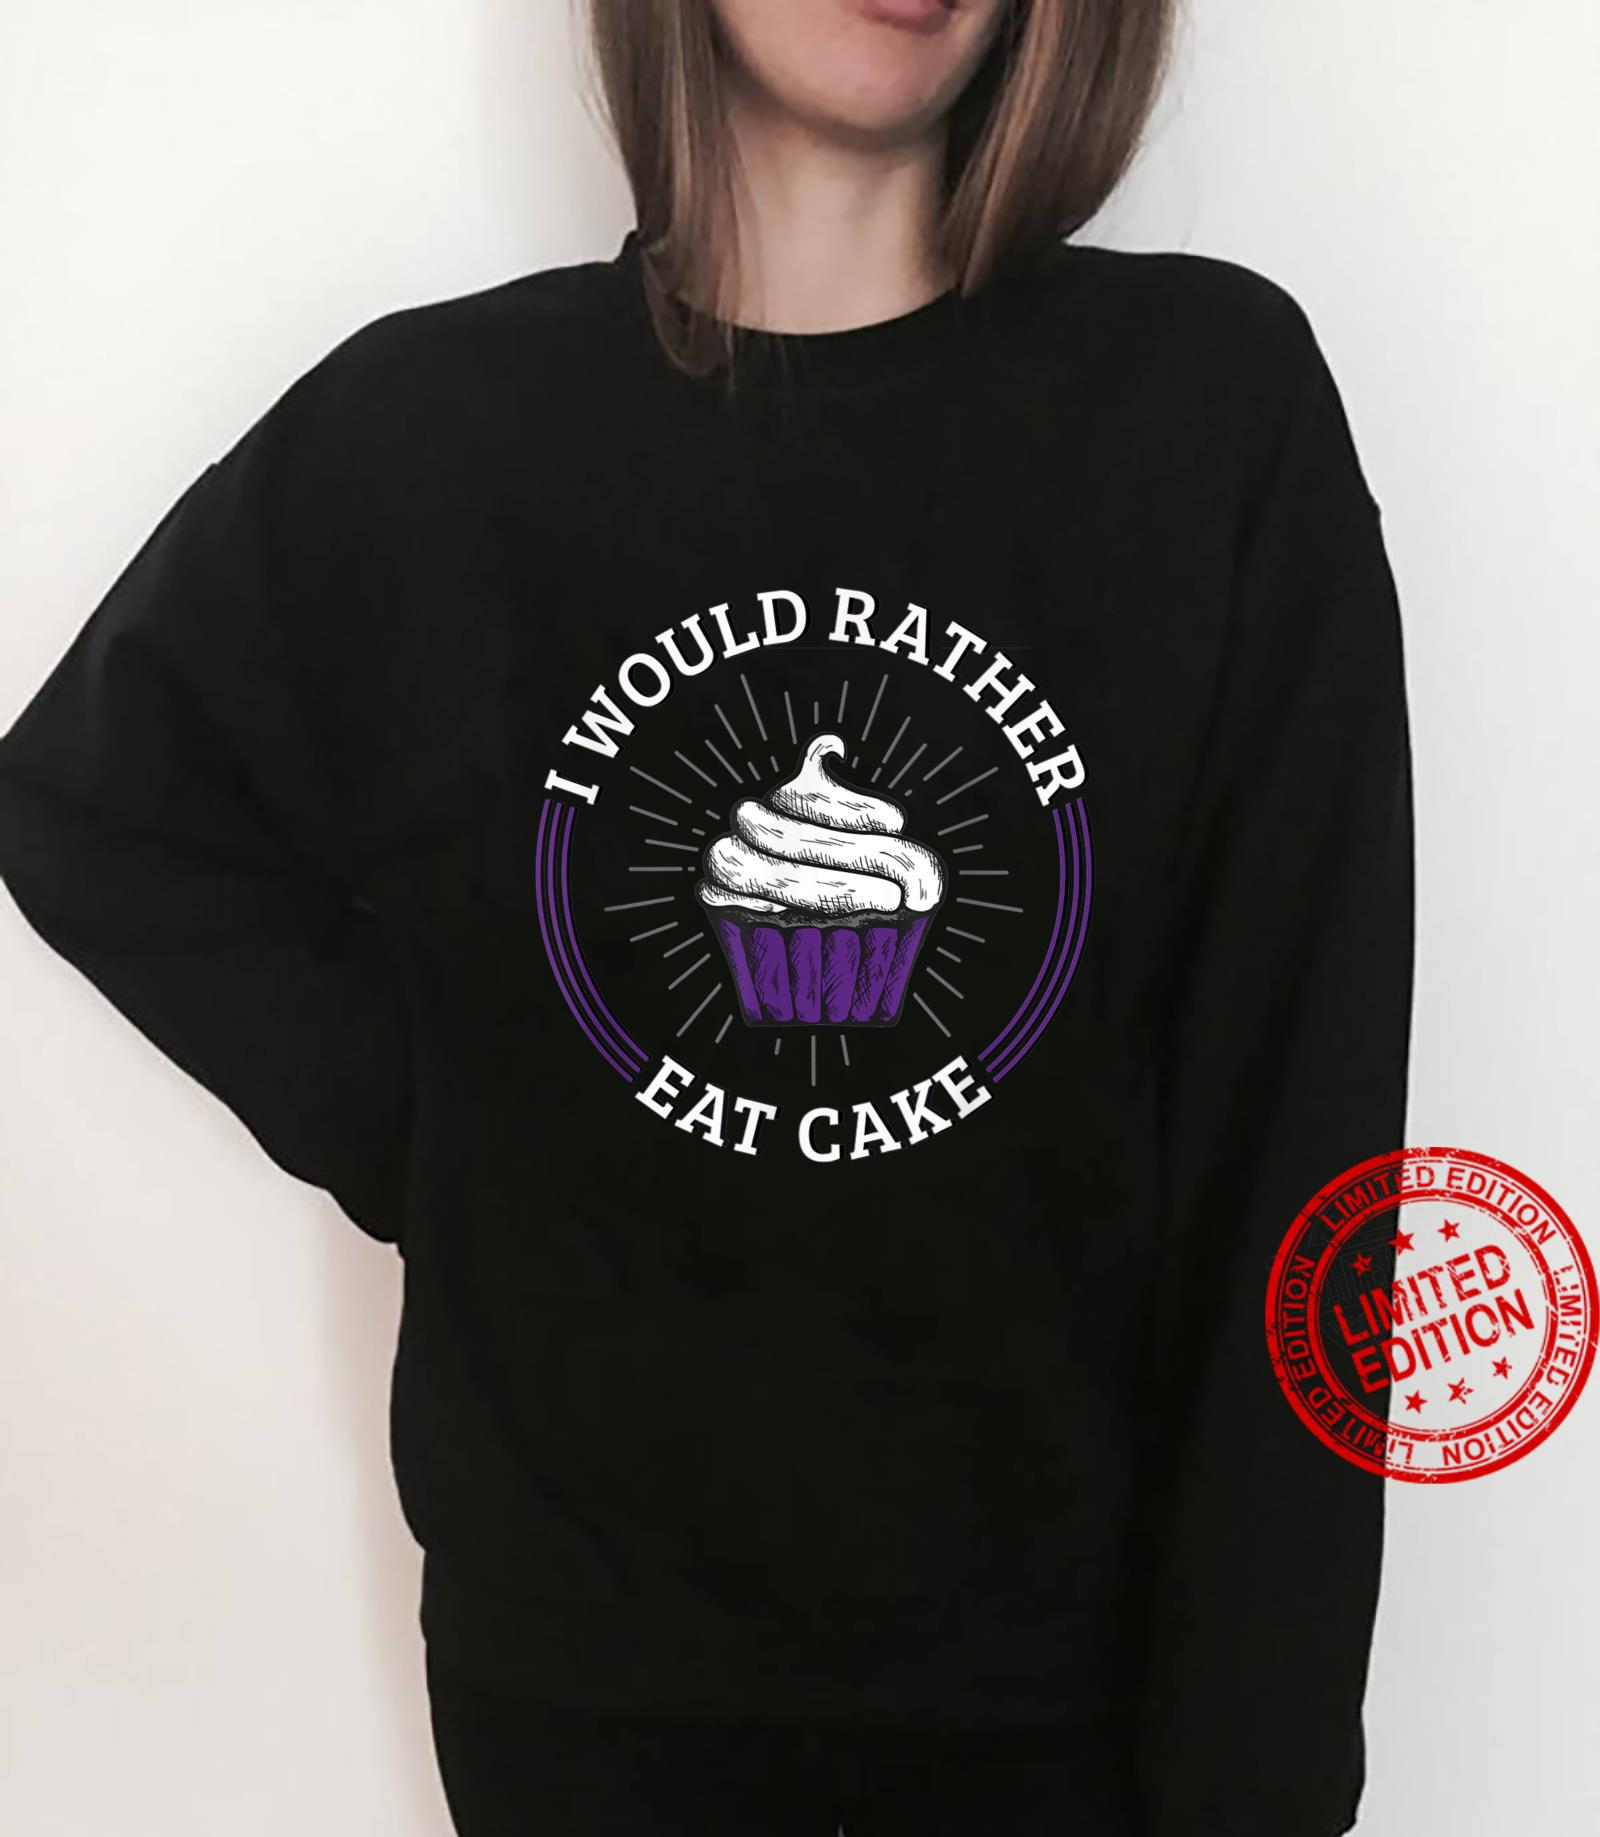 I'd Rather Eat Cake Asexual Aromatic Demisexual Pride Shirt sweater